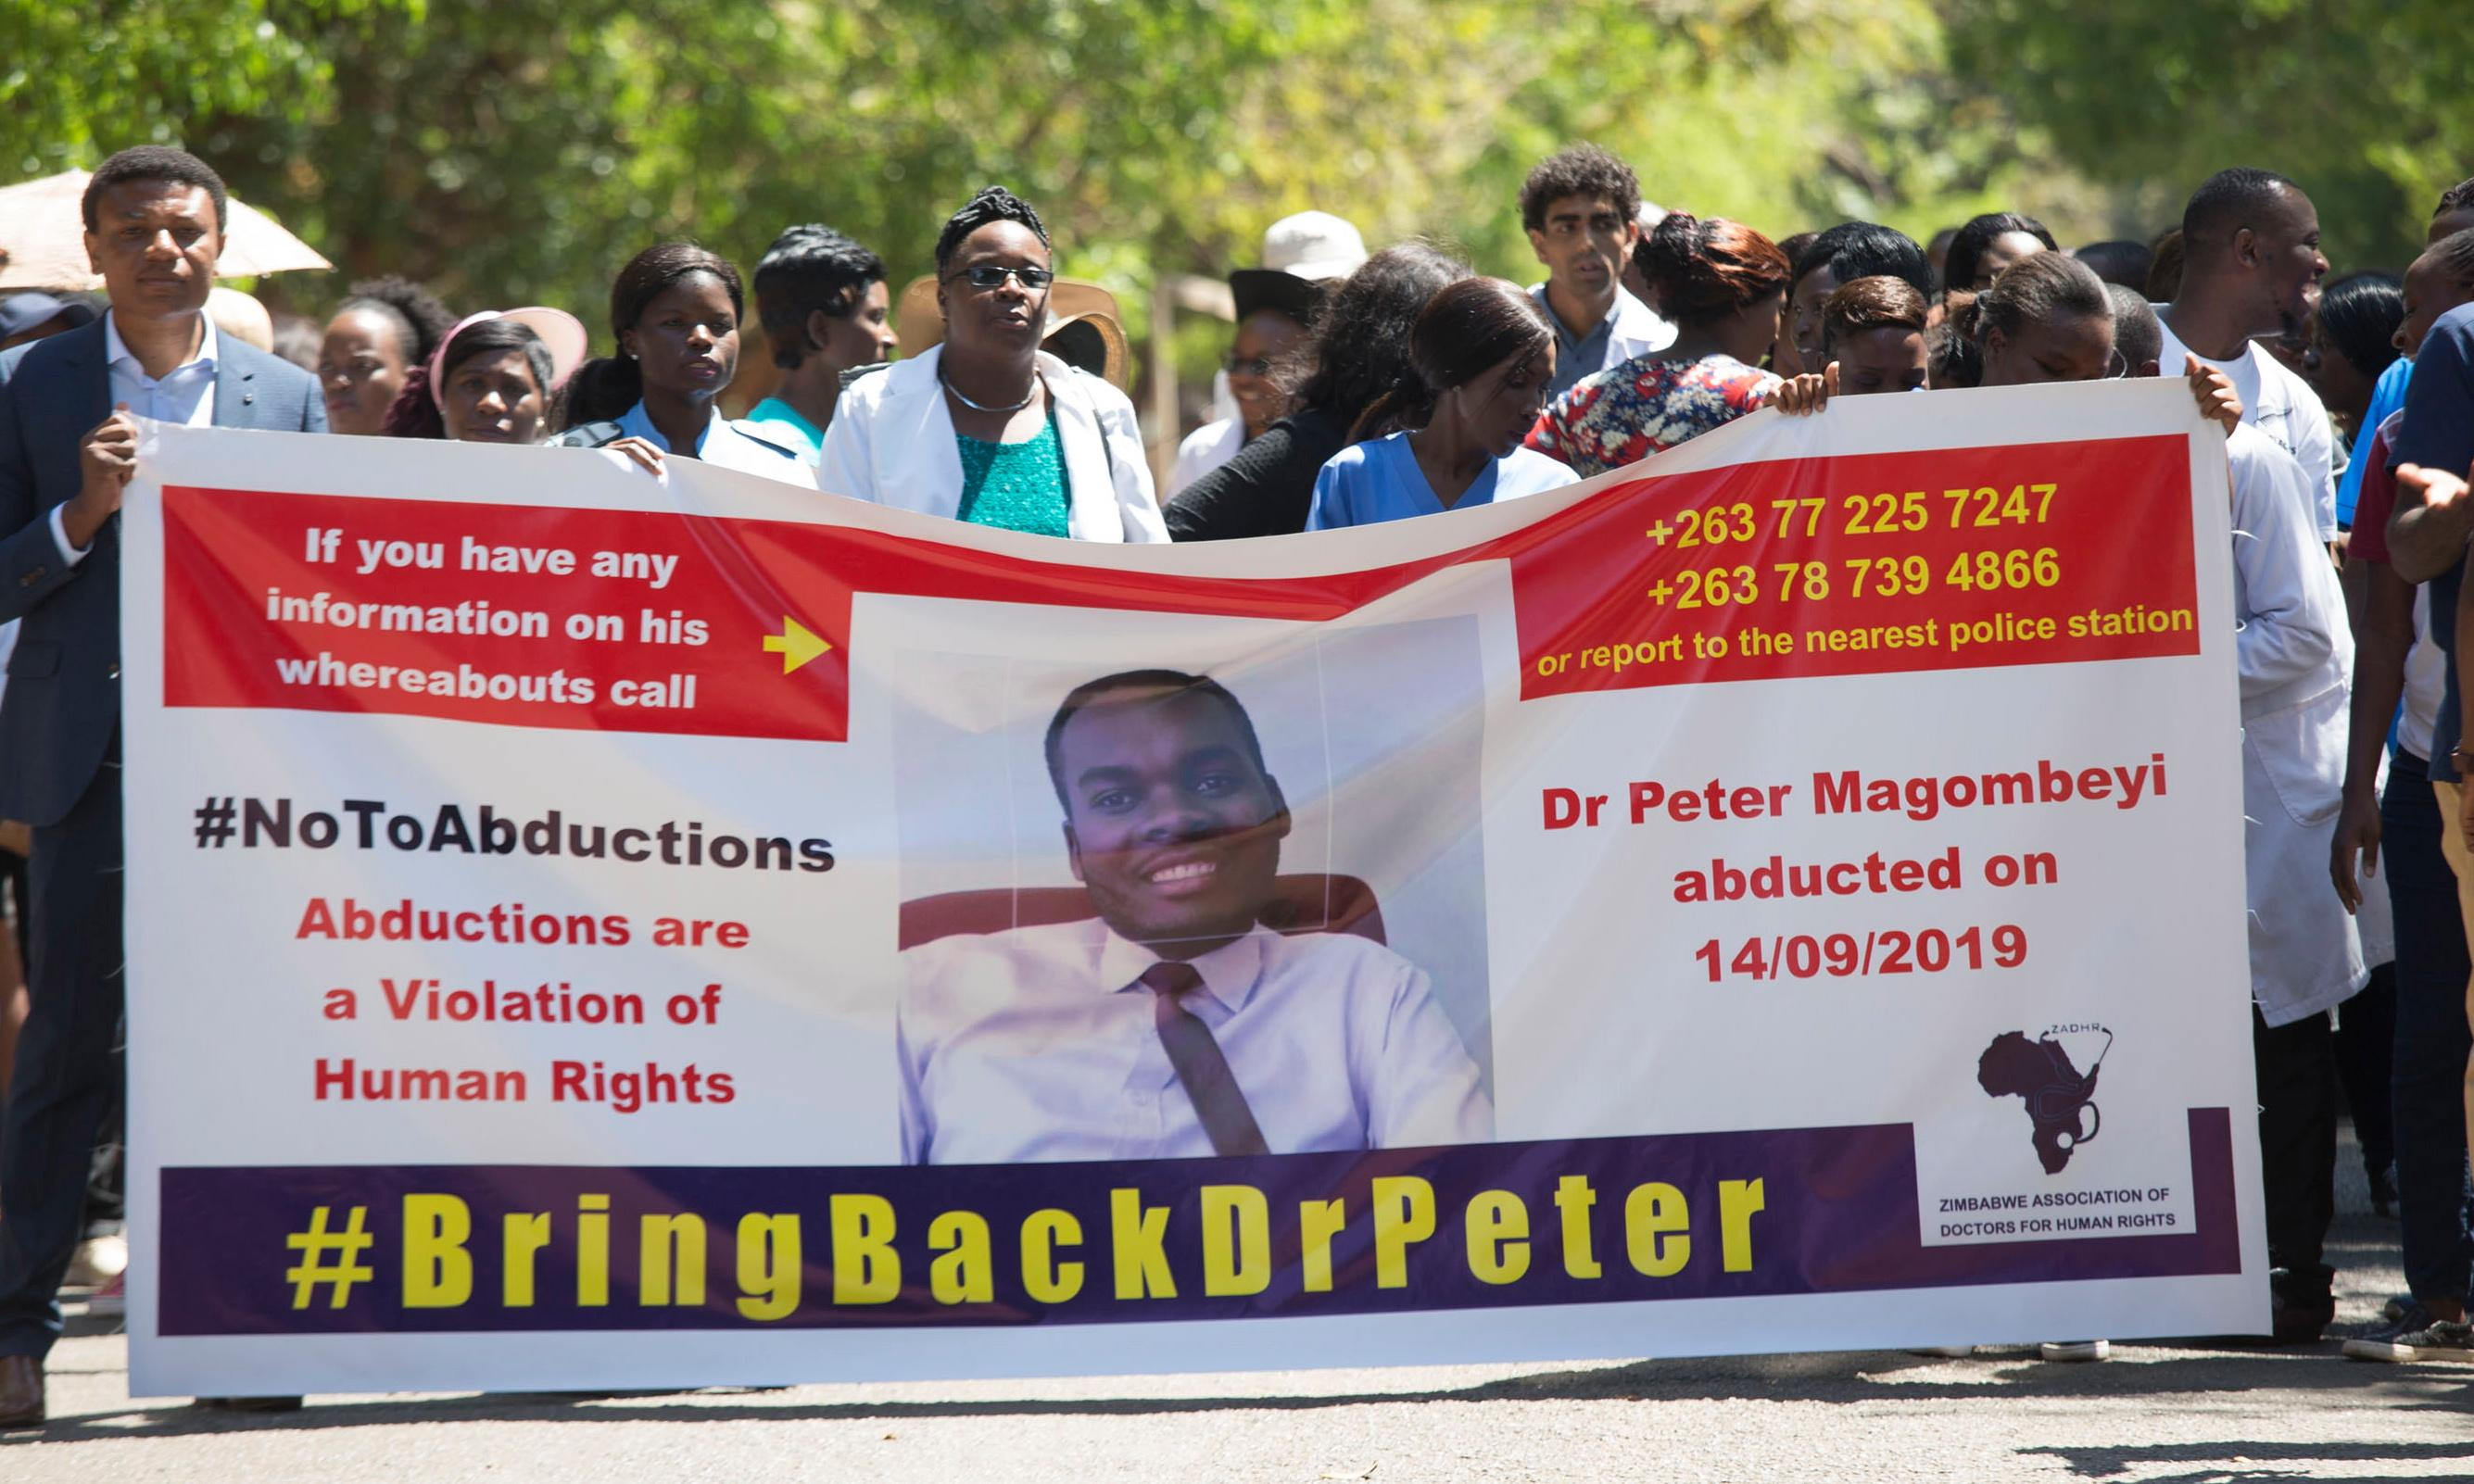 Zimbabwe union leader found alive after reported abduction